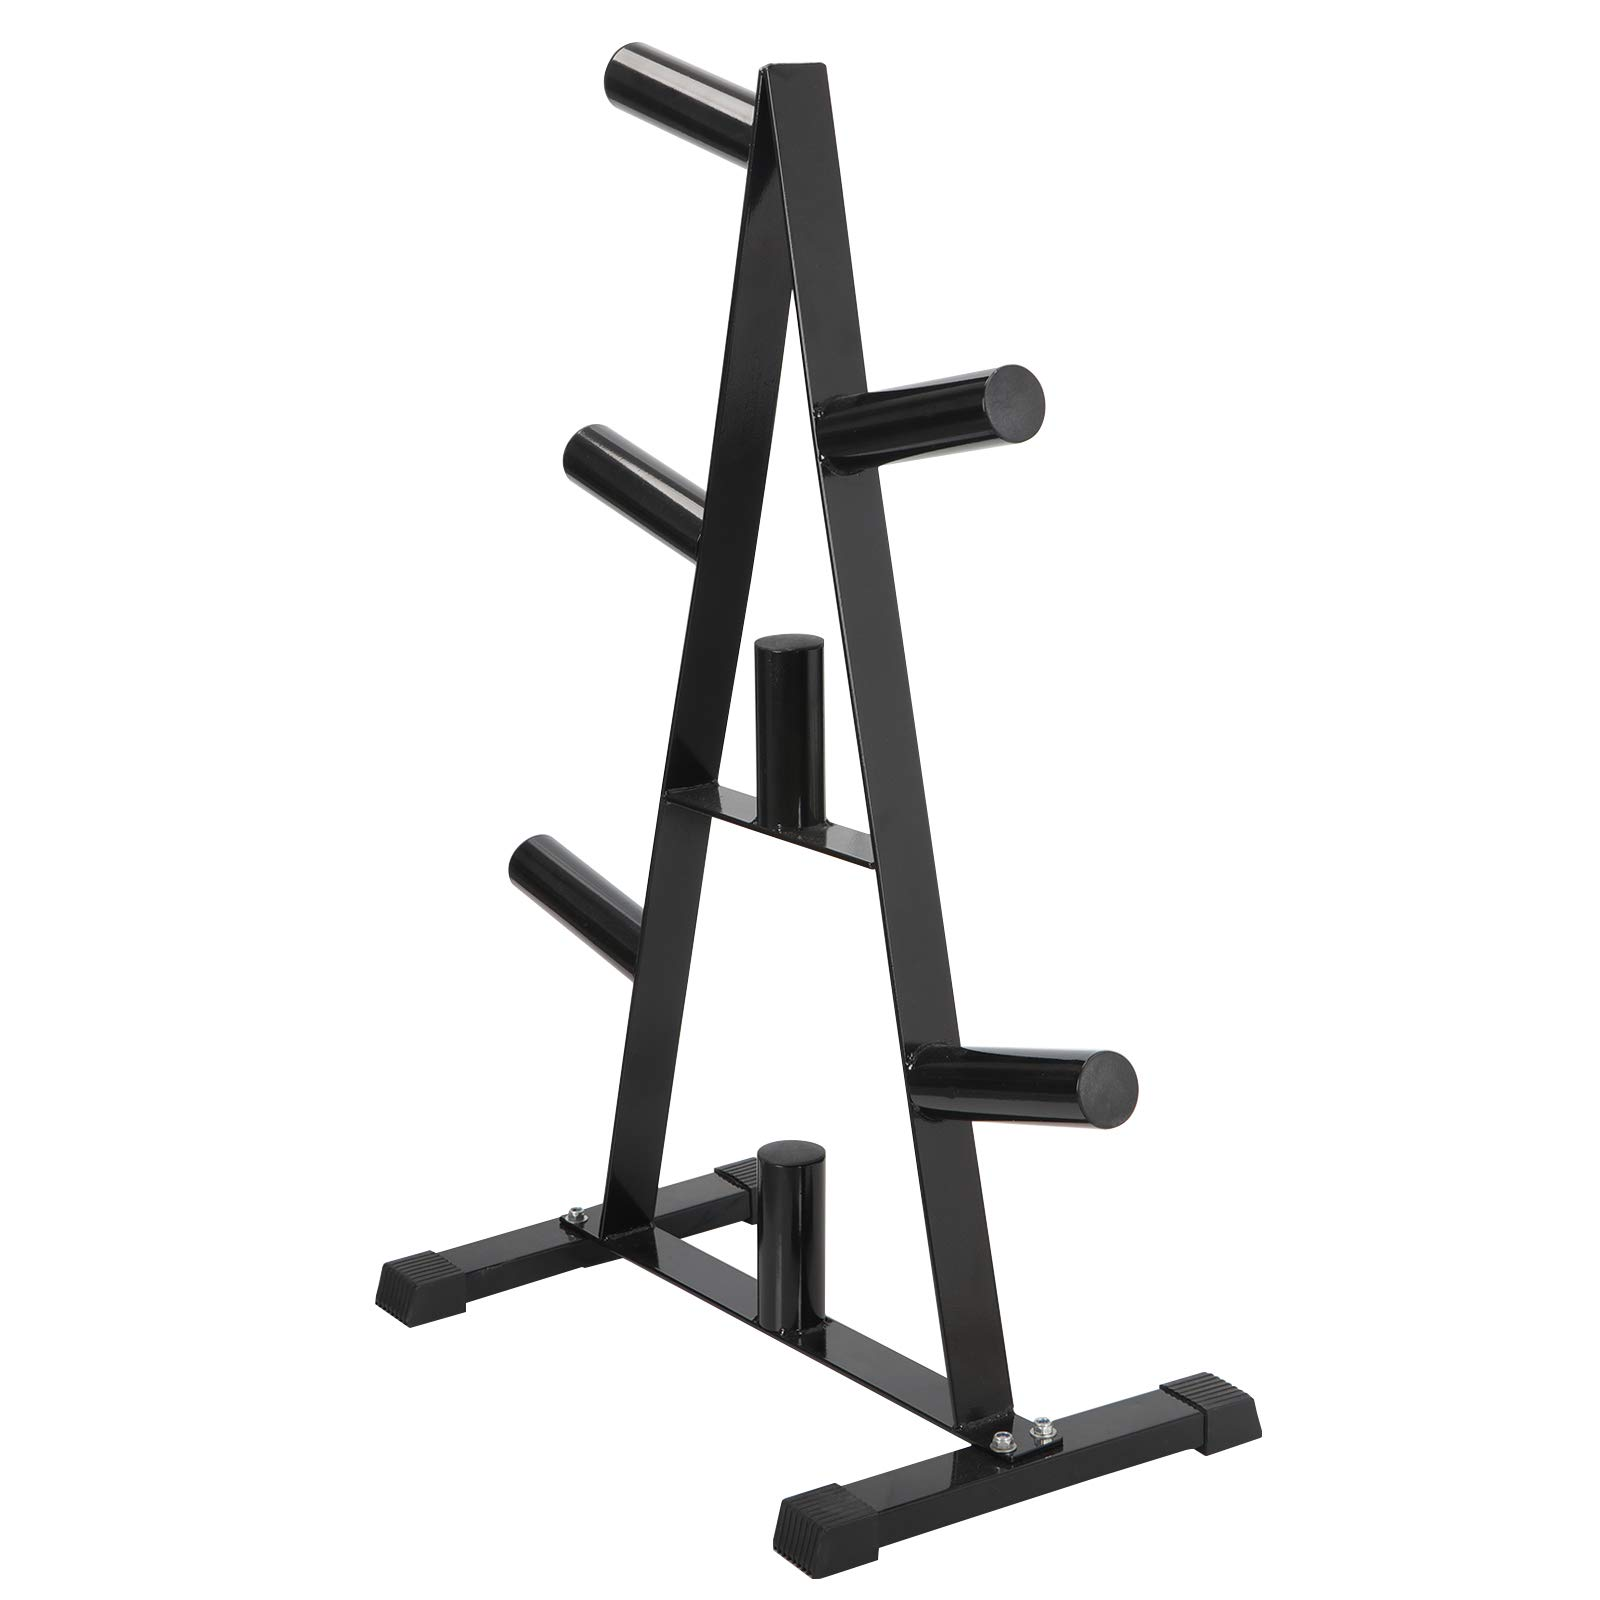 ZENY Fitness Olympic 2'' Weight Plate Rack Tree Barbell Holder Organizer Storage Stand 2'' Plate